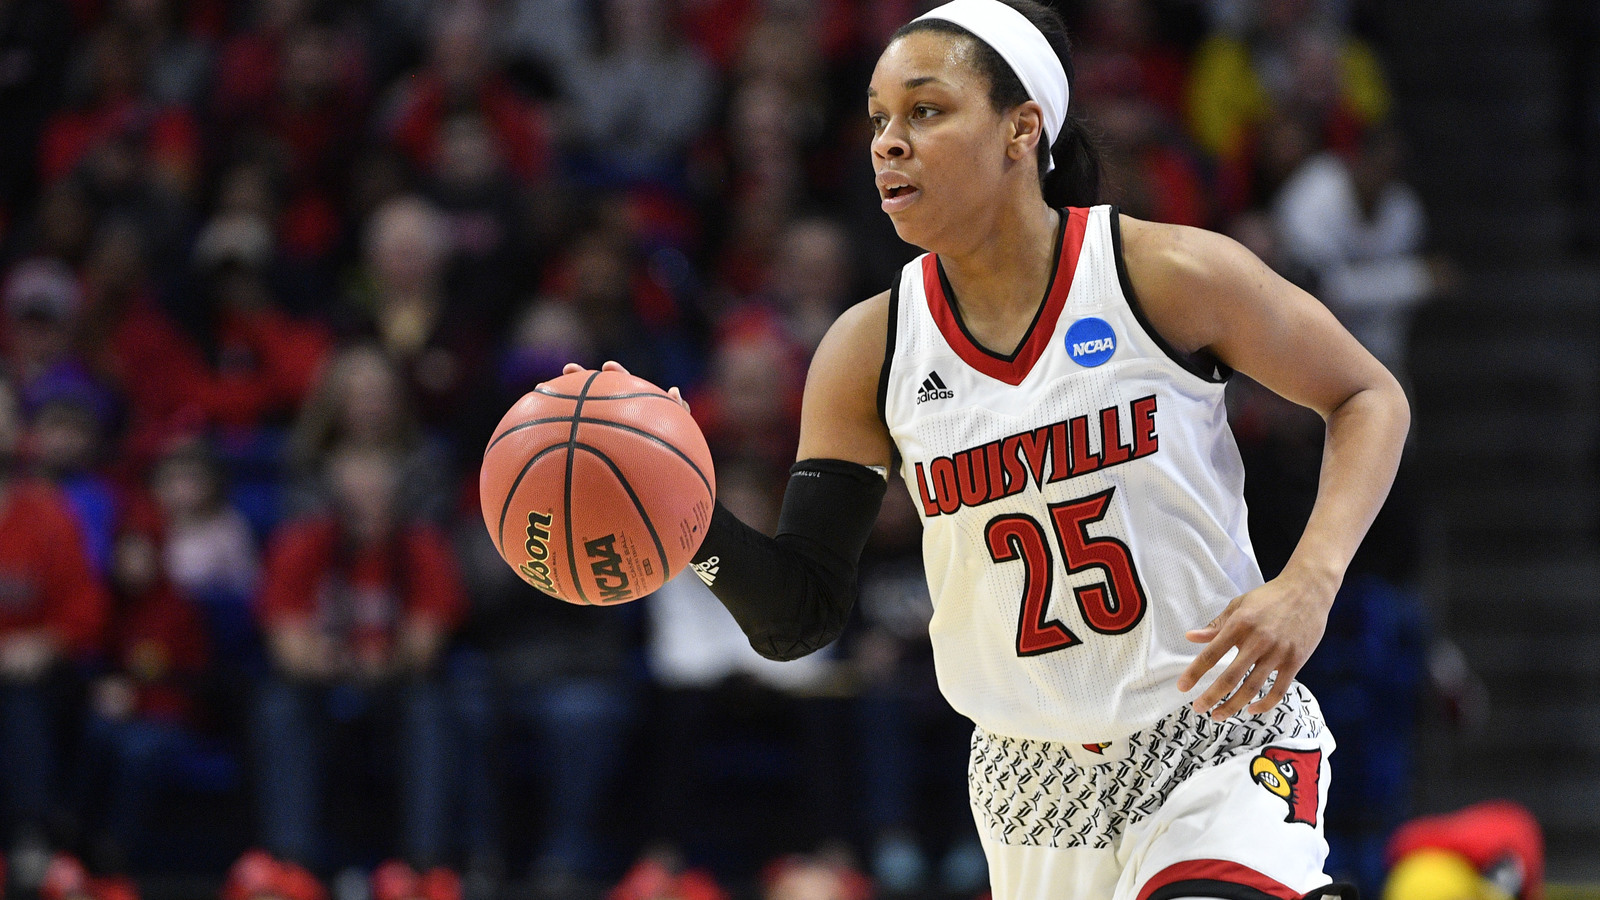 Louisville can't get past Mississippi State in Final Four